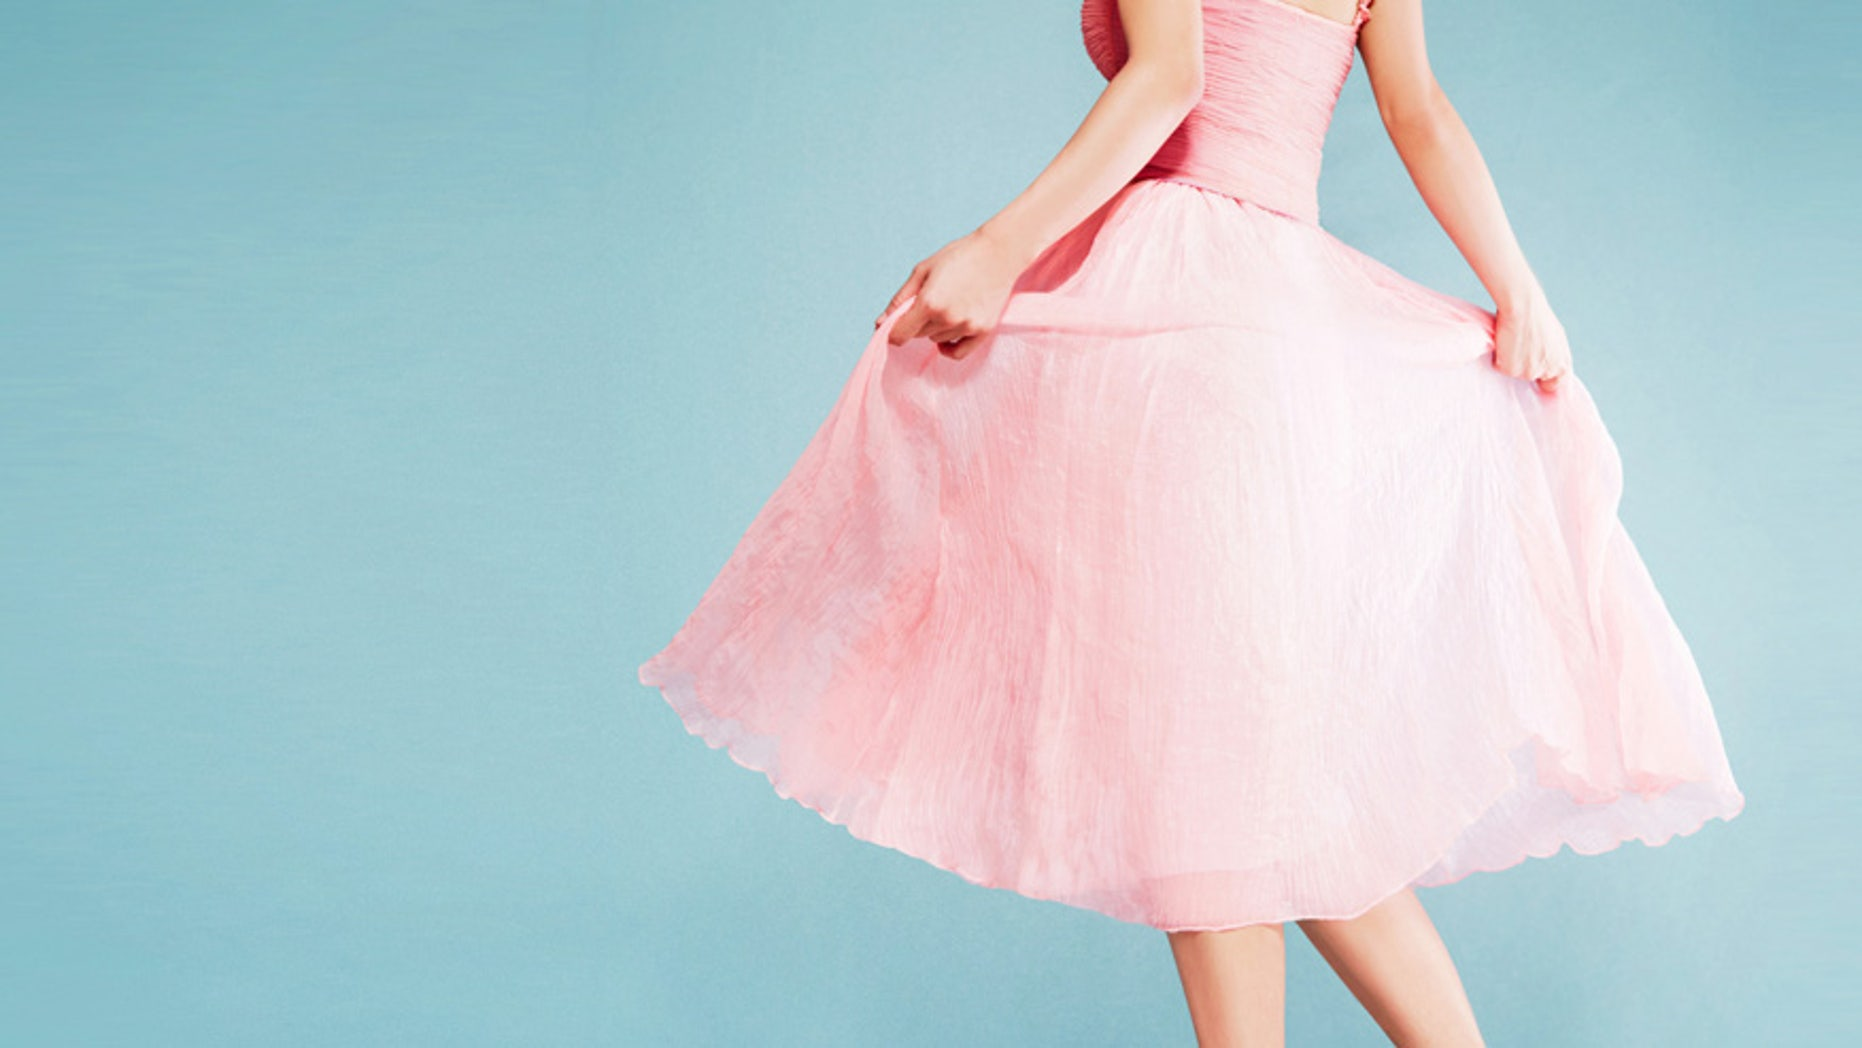 Millennial pink is the new trendy color to wear this season.